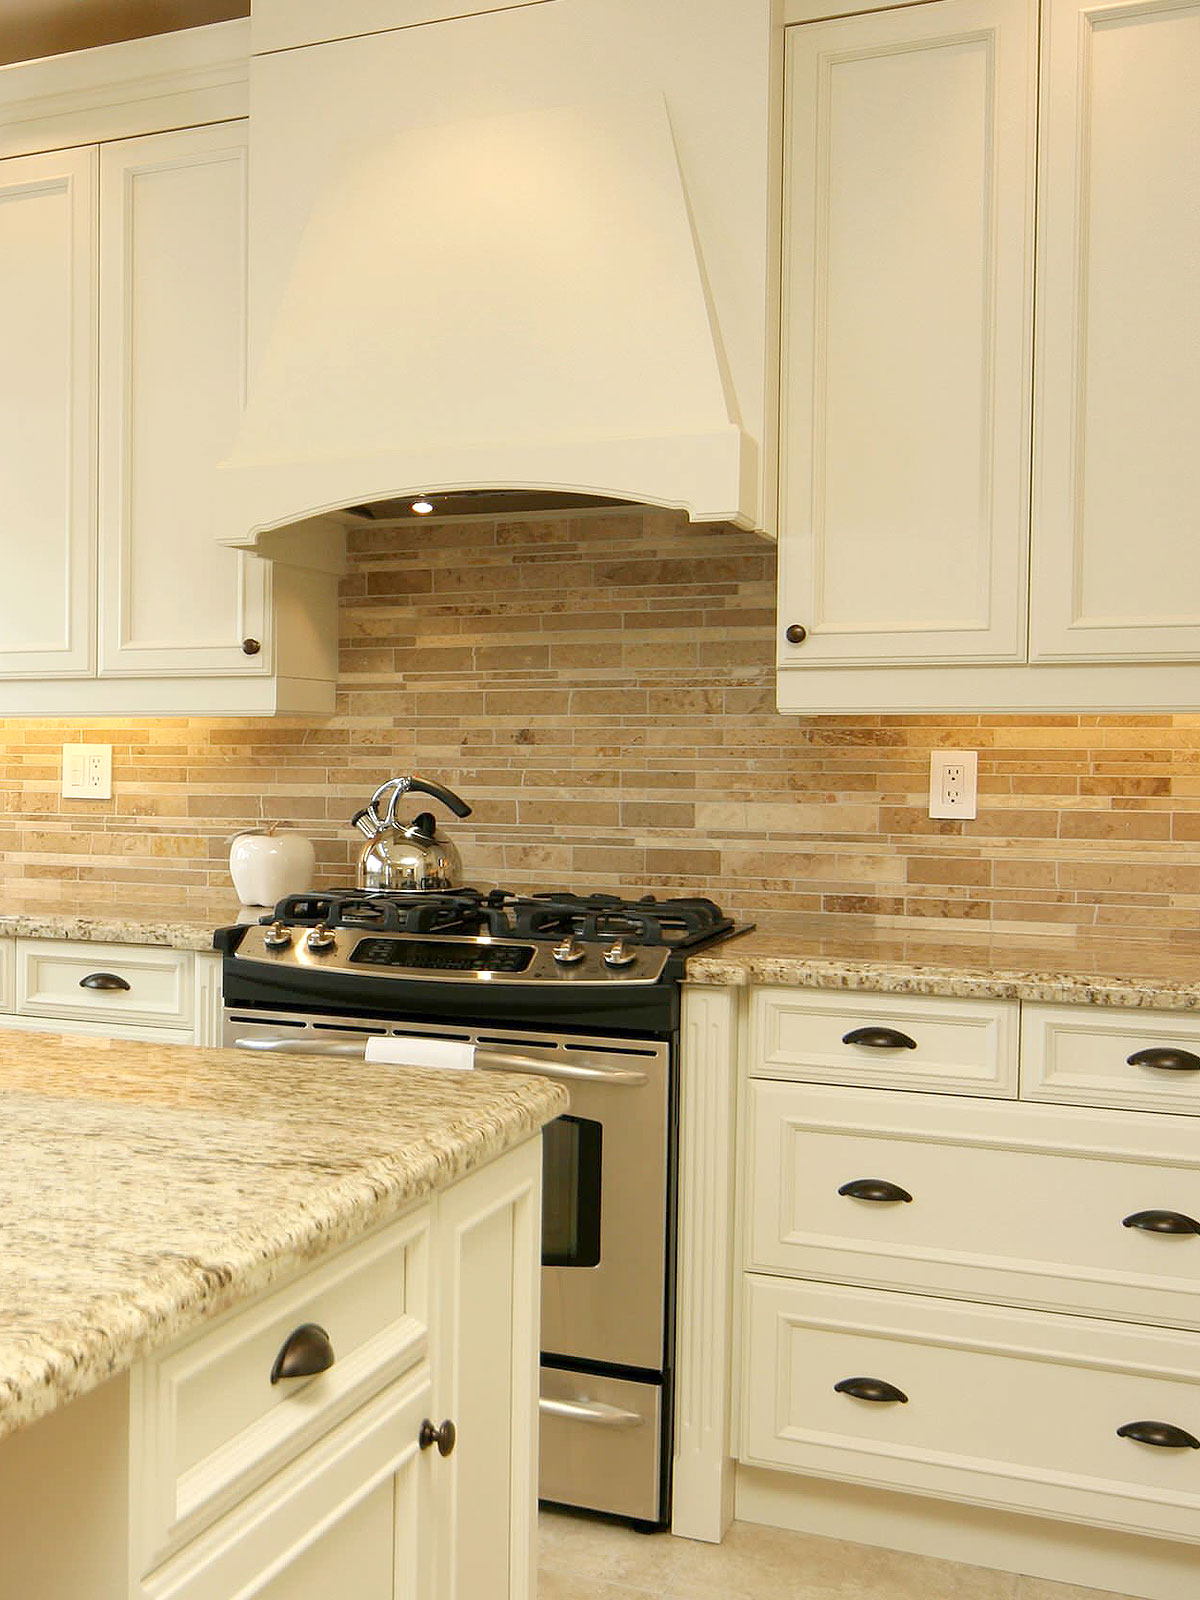 Tile travertine backsplash design